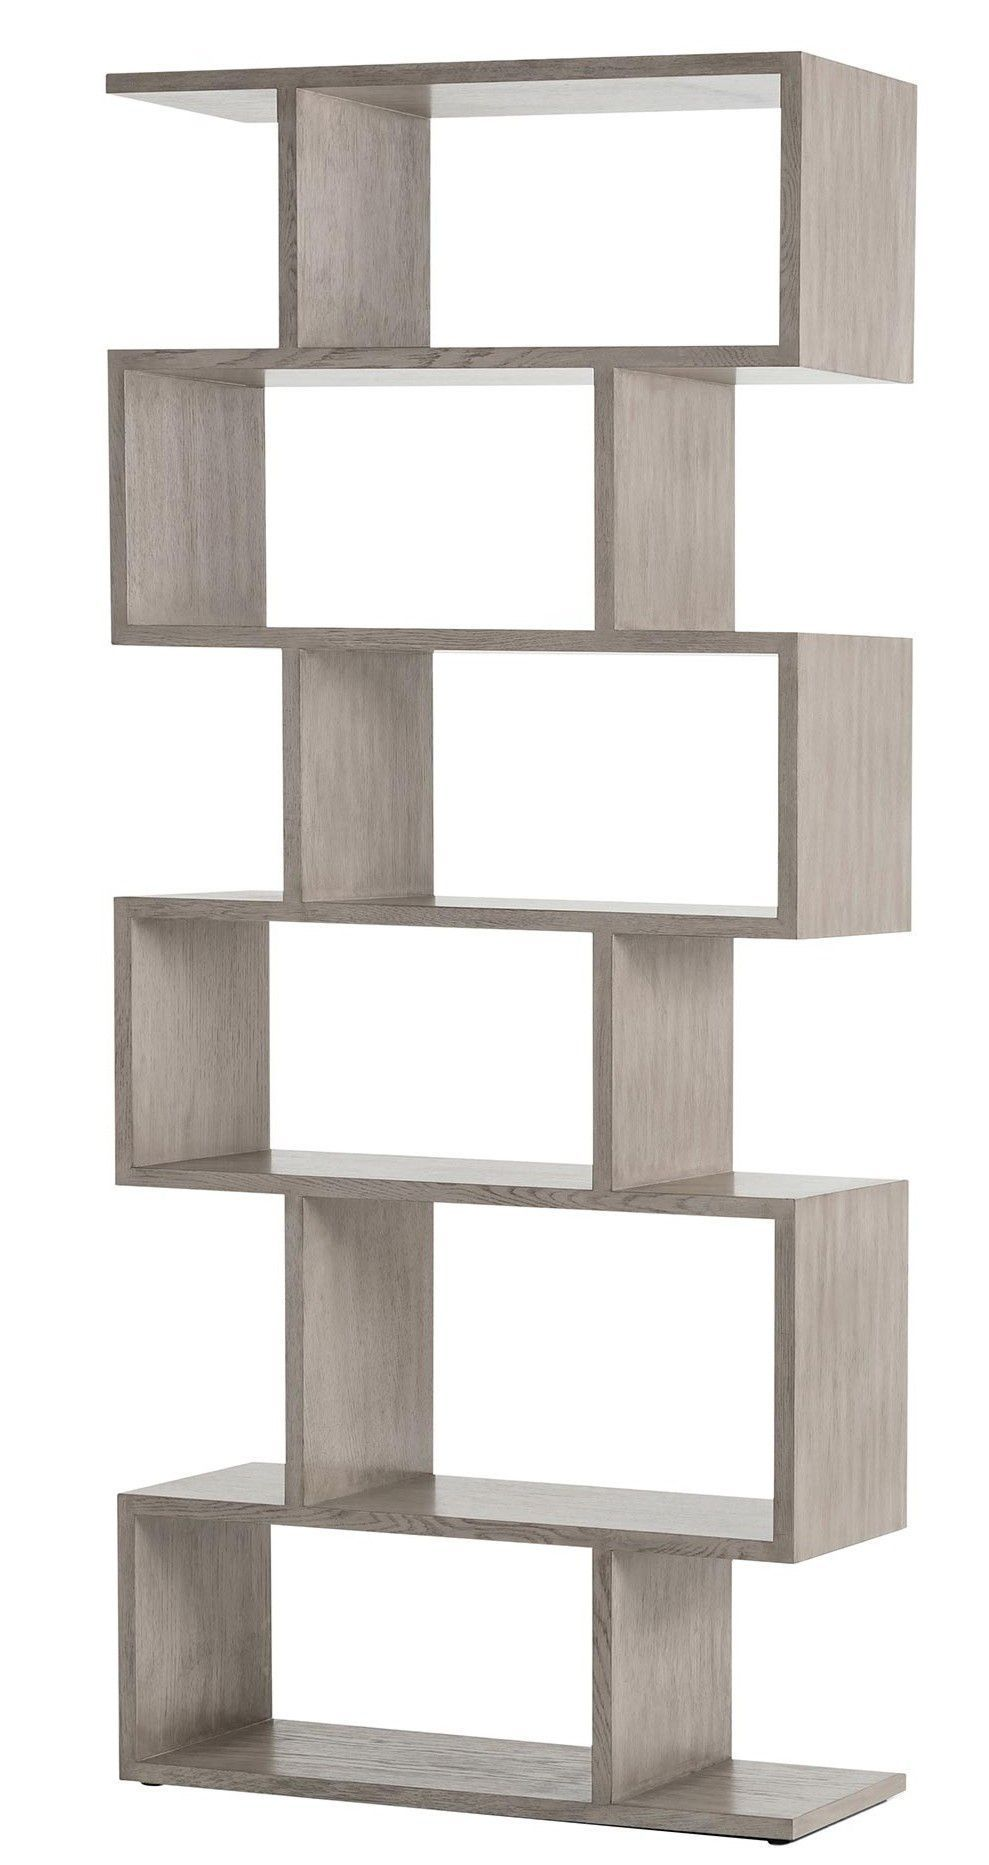 This Contemporary Wood Bookshelf Adds Instant Style Points To Any